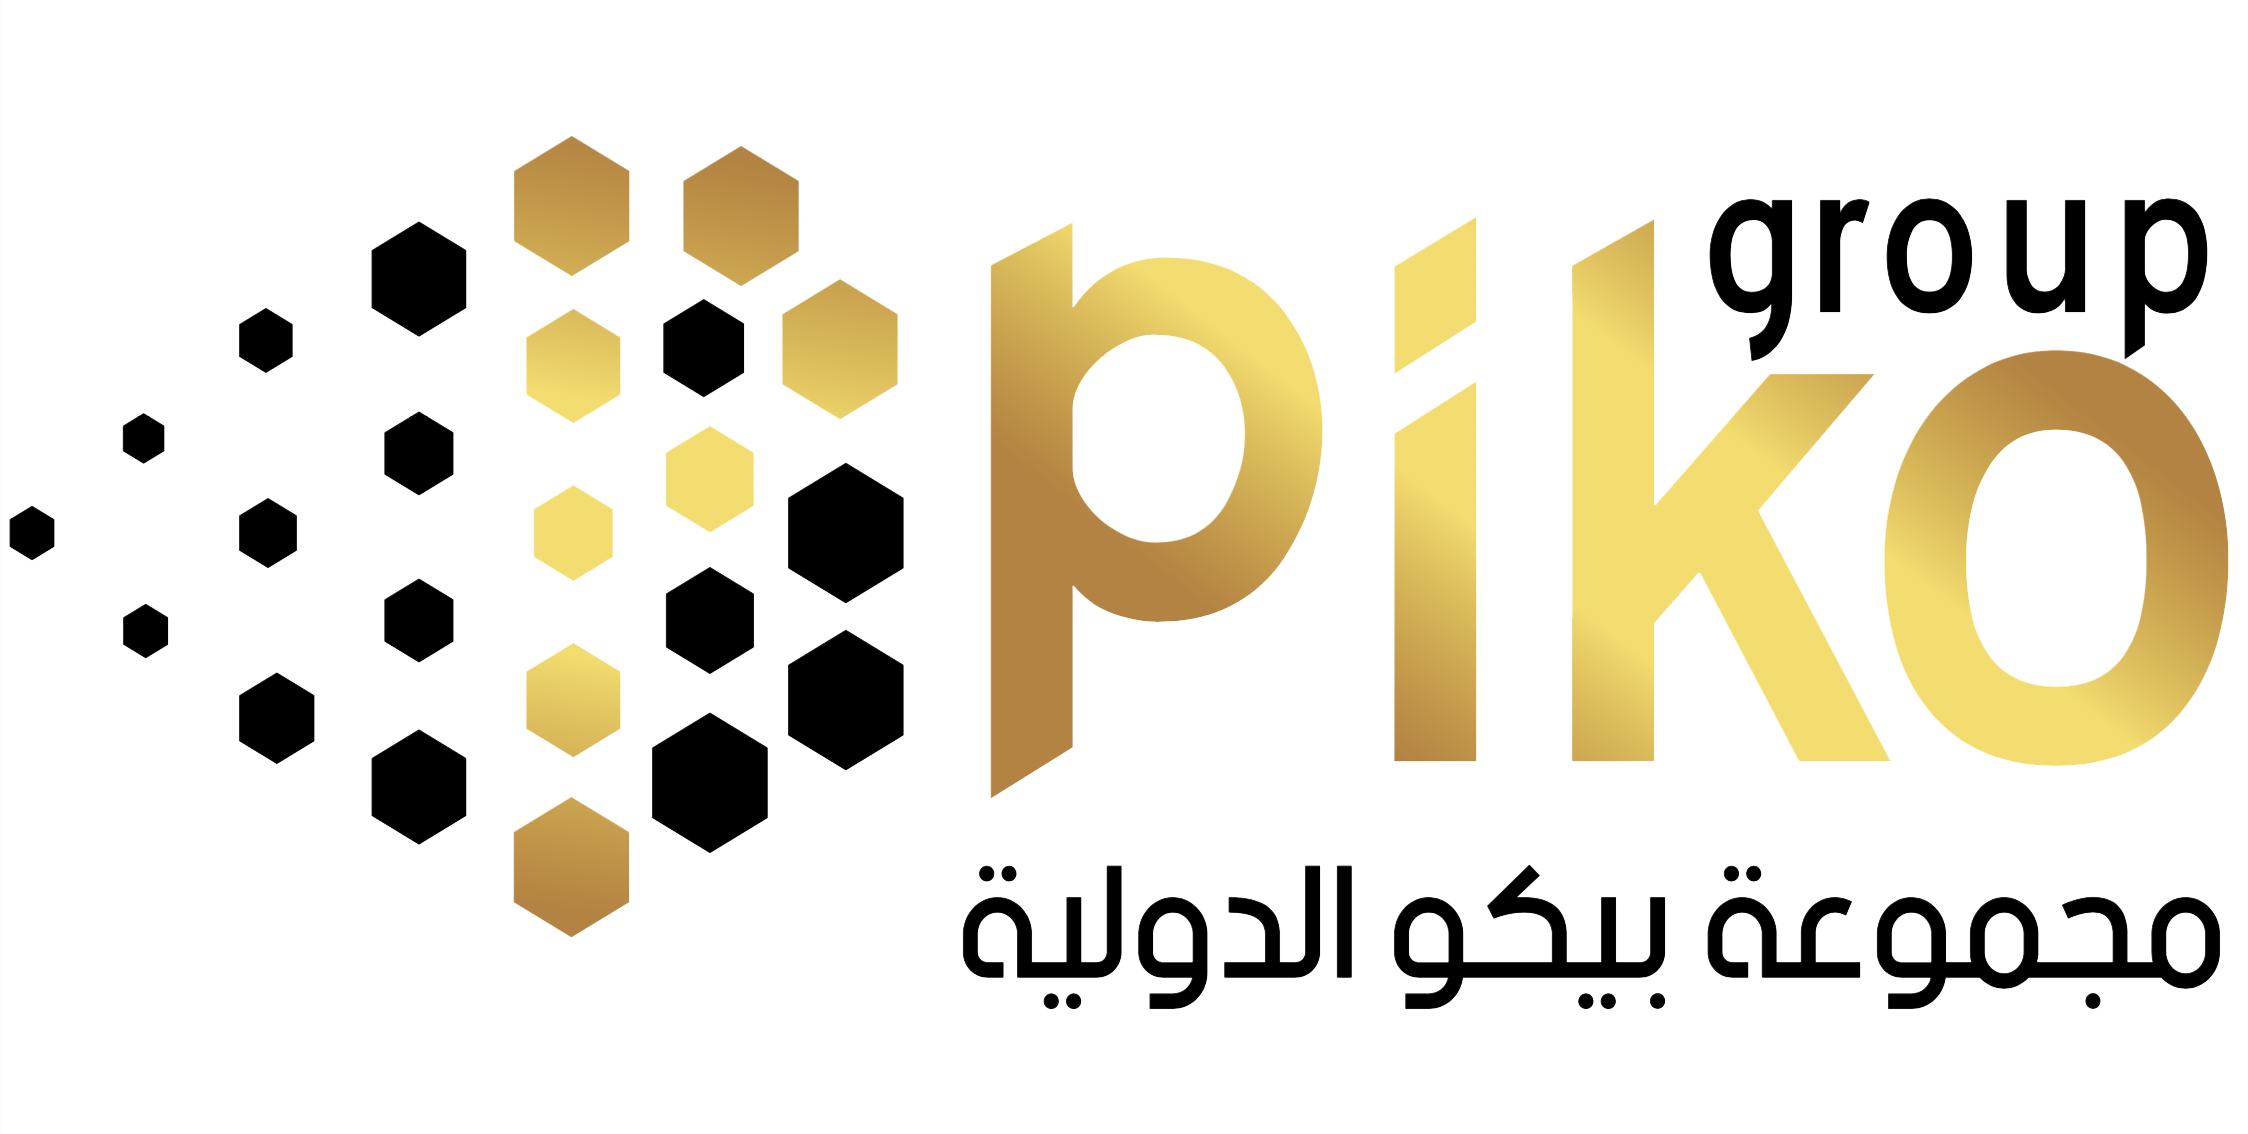 Piko Group